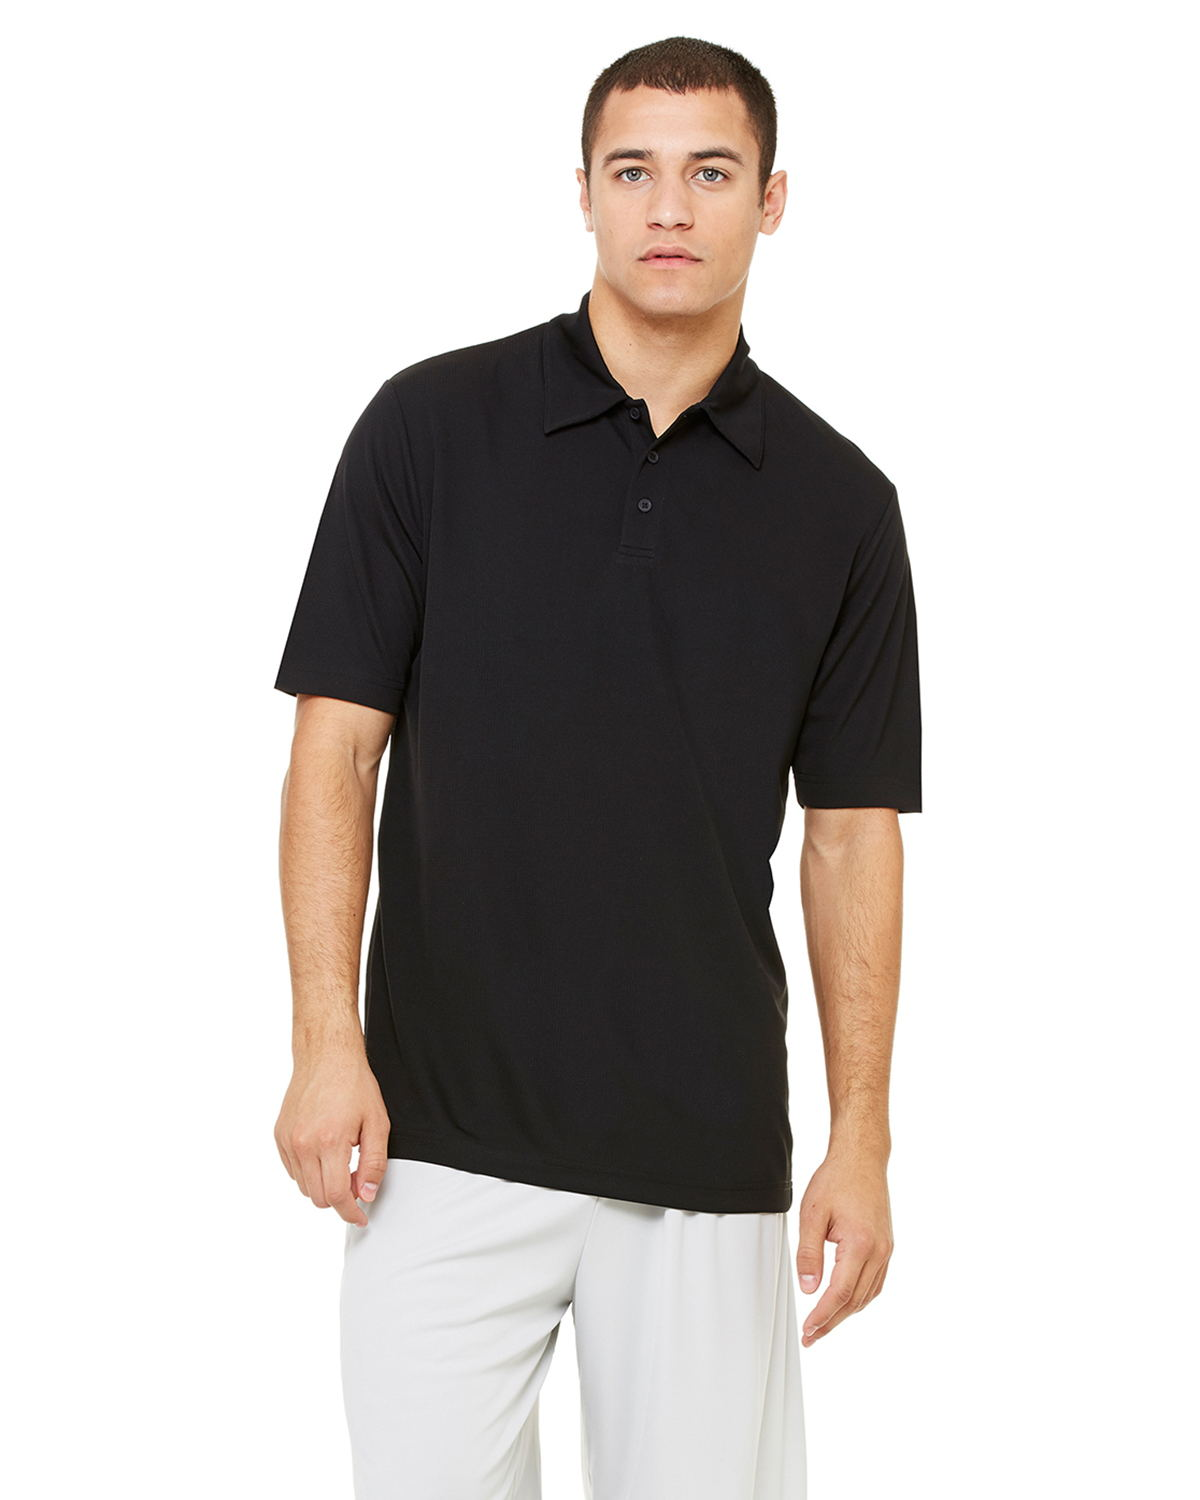 Alo M1709 - Performance Three-Button Mesh Polo